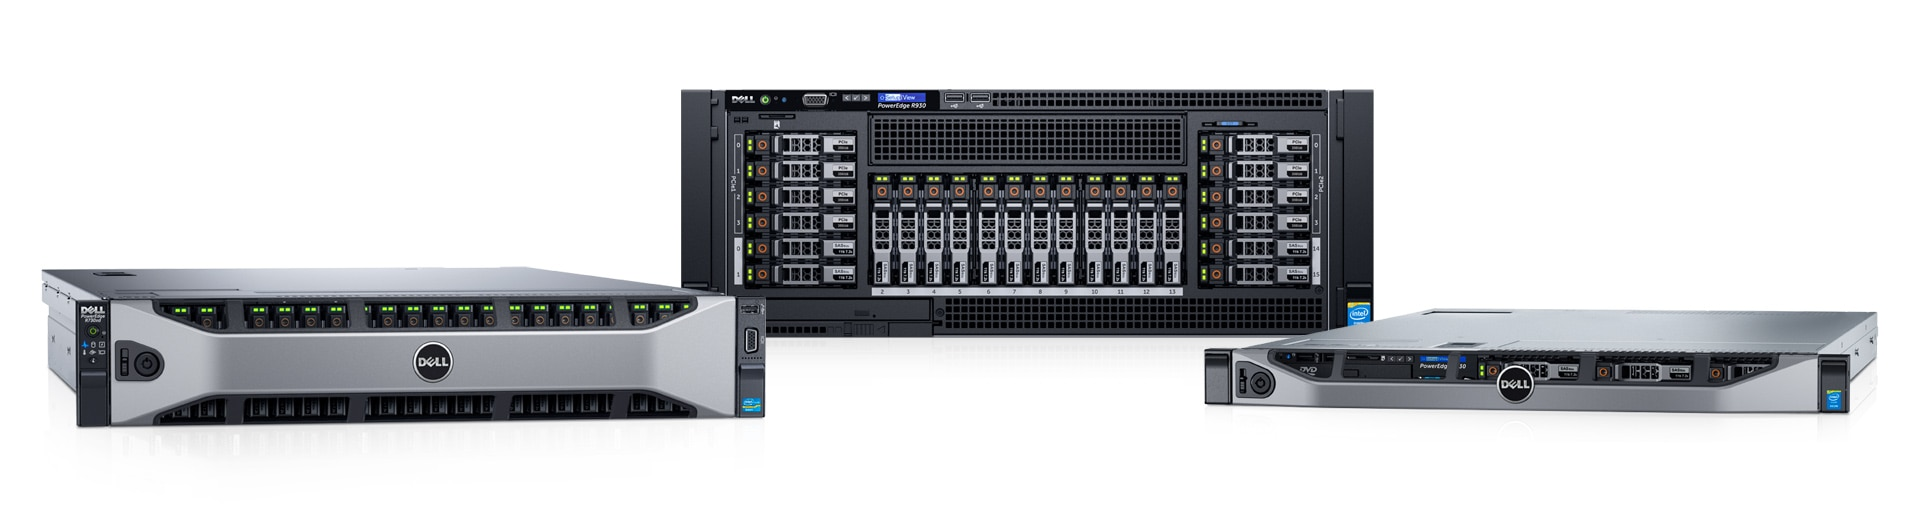 Dell PowerEdge Servers : Rack Servers | Dell UK